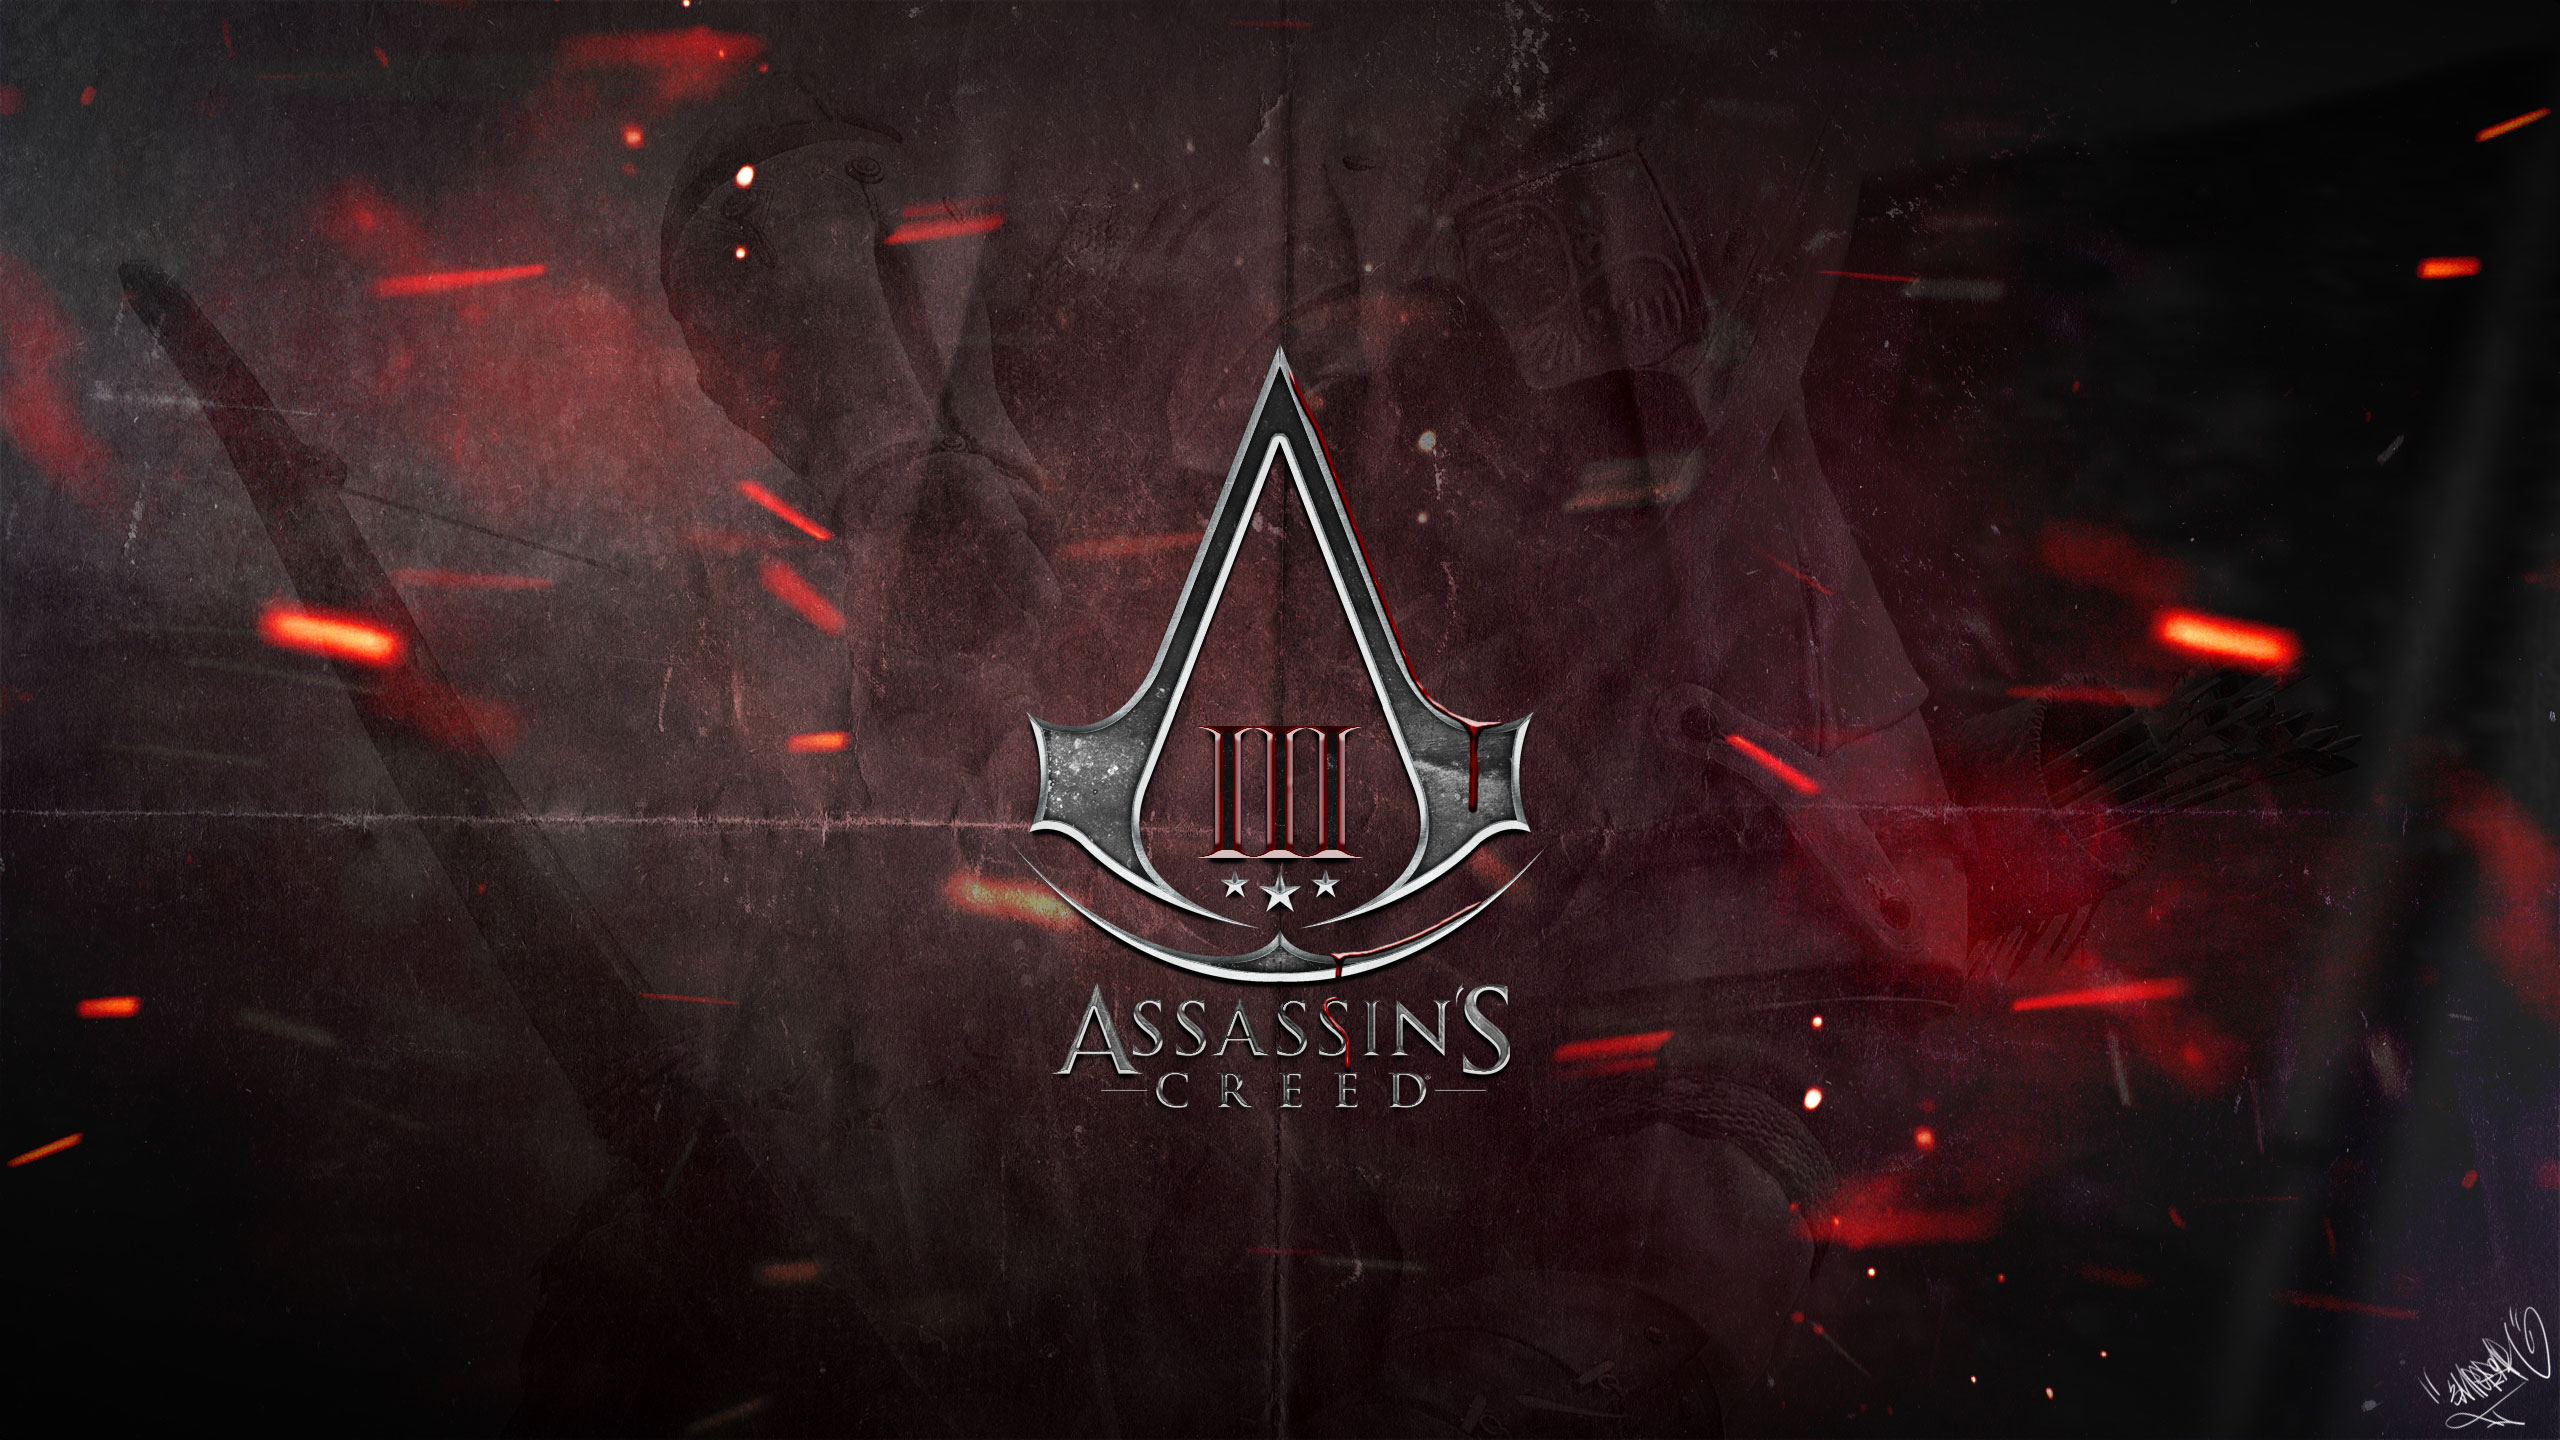 Free Download The Assassins Images Assassins Creed 3 Hd Wallpaper And Background 2560x1440 For Your Desktop Mobile Tablet Explore 49 Assassin S Creed 3 Hd Wallpaper Assassins Creed Hd Wallpaper